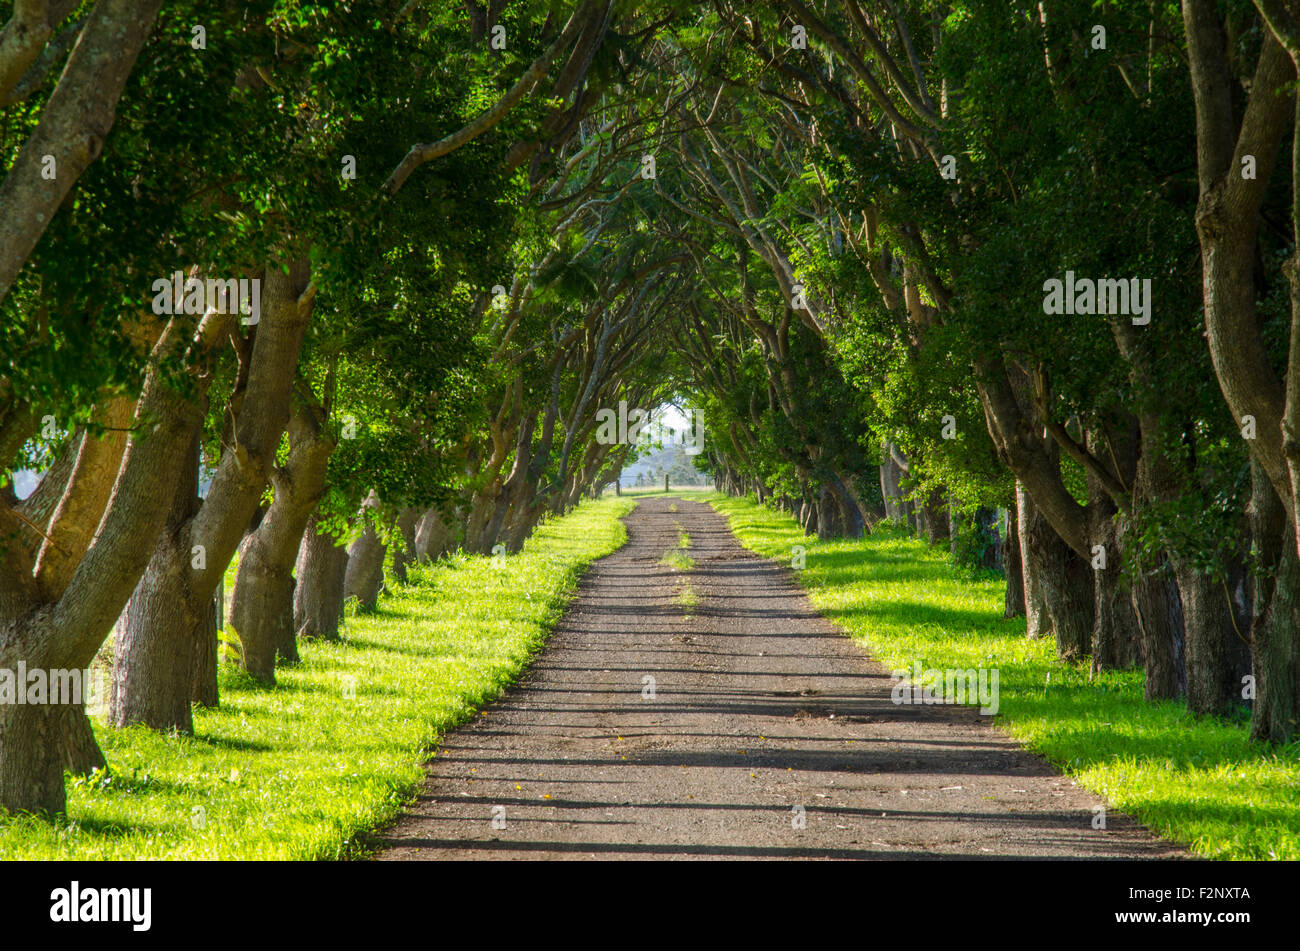 A Long Tree Lined Driveway Entrance To A Farm In New South